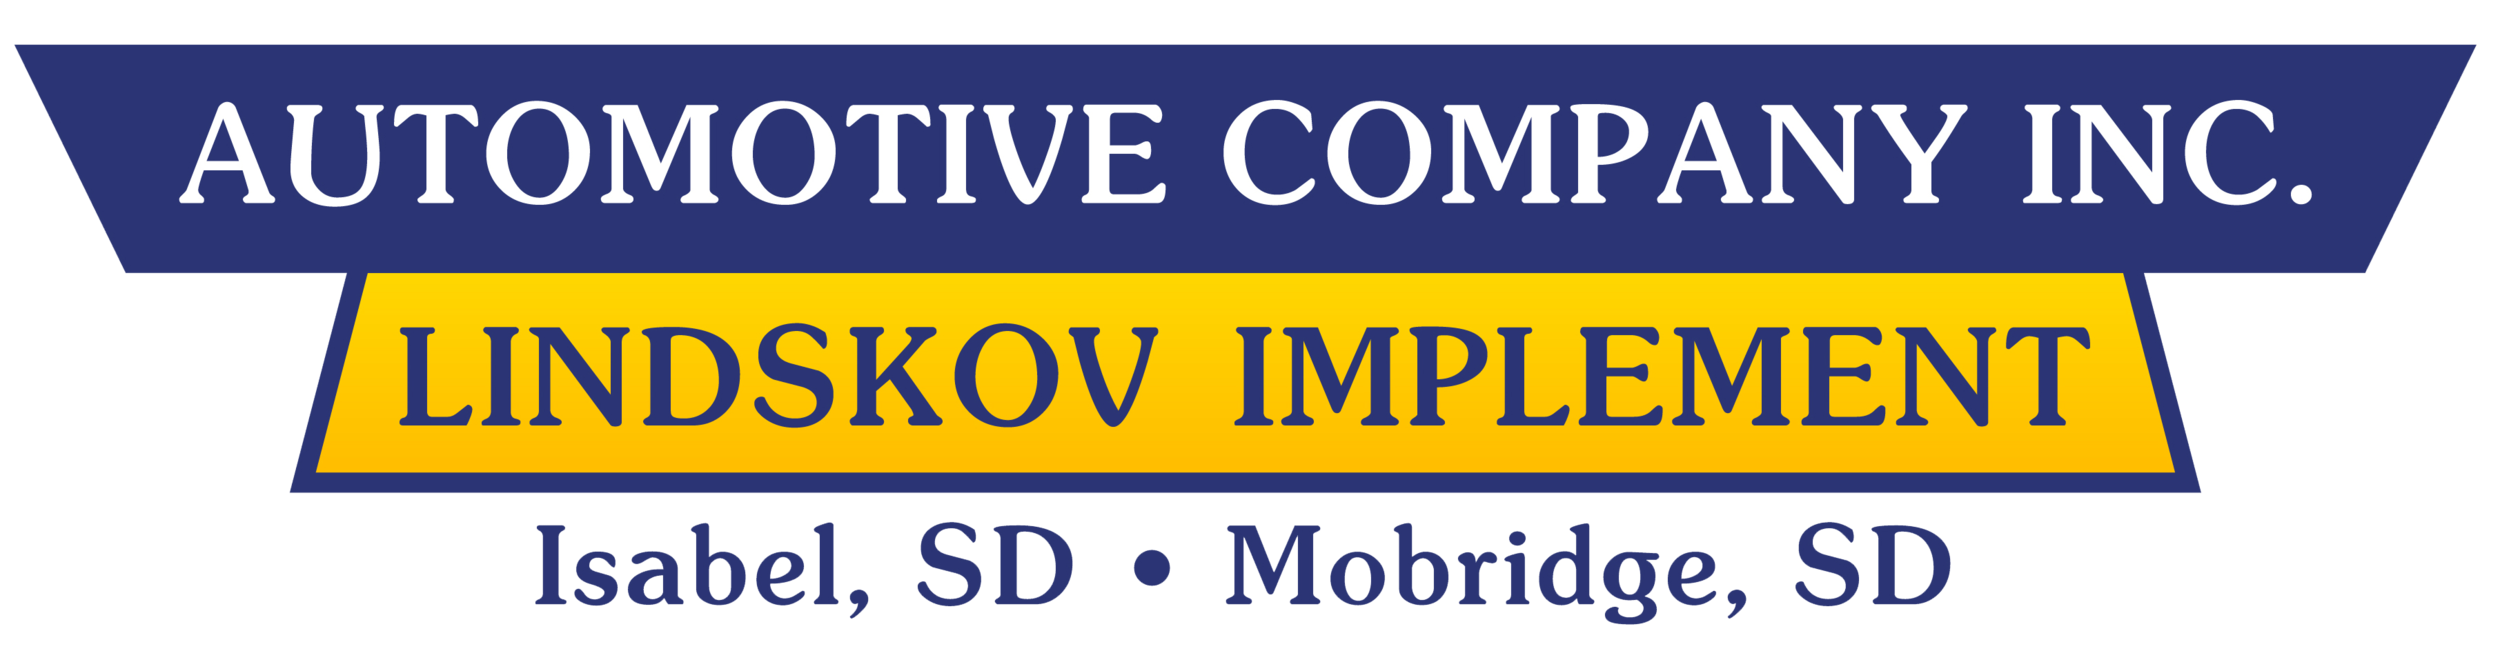 Automotive Company - Lindskov Implement  - Dealership, Parts, Repairs Isabel, SD - (605) 466-2112